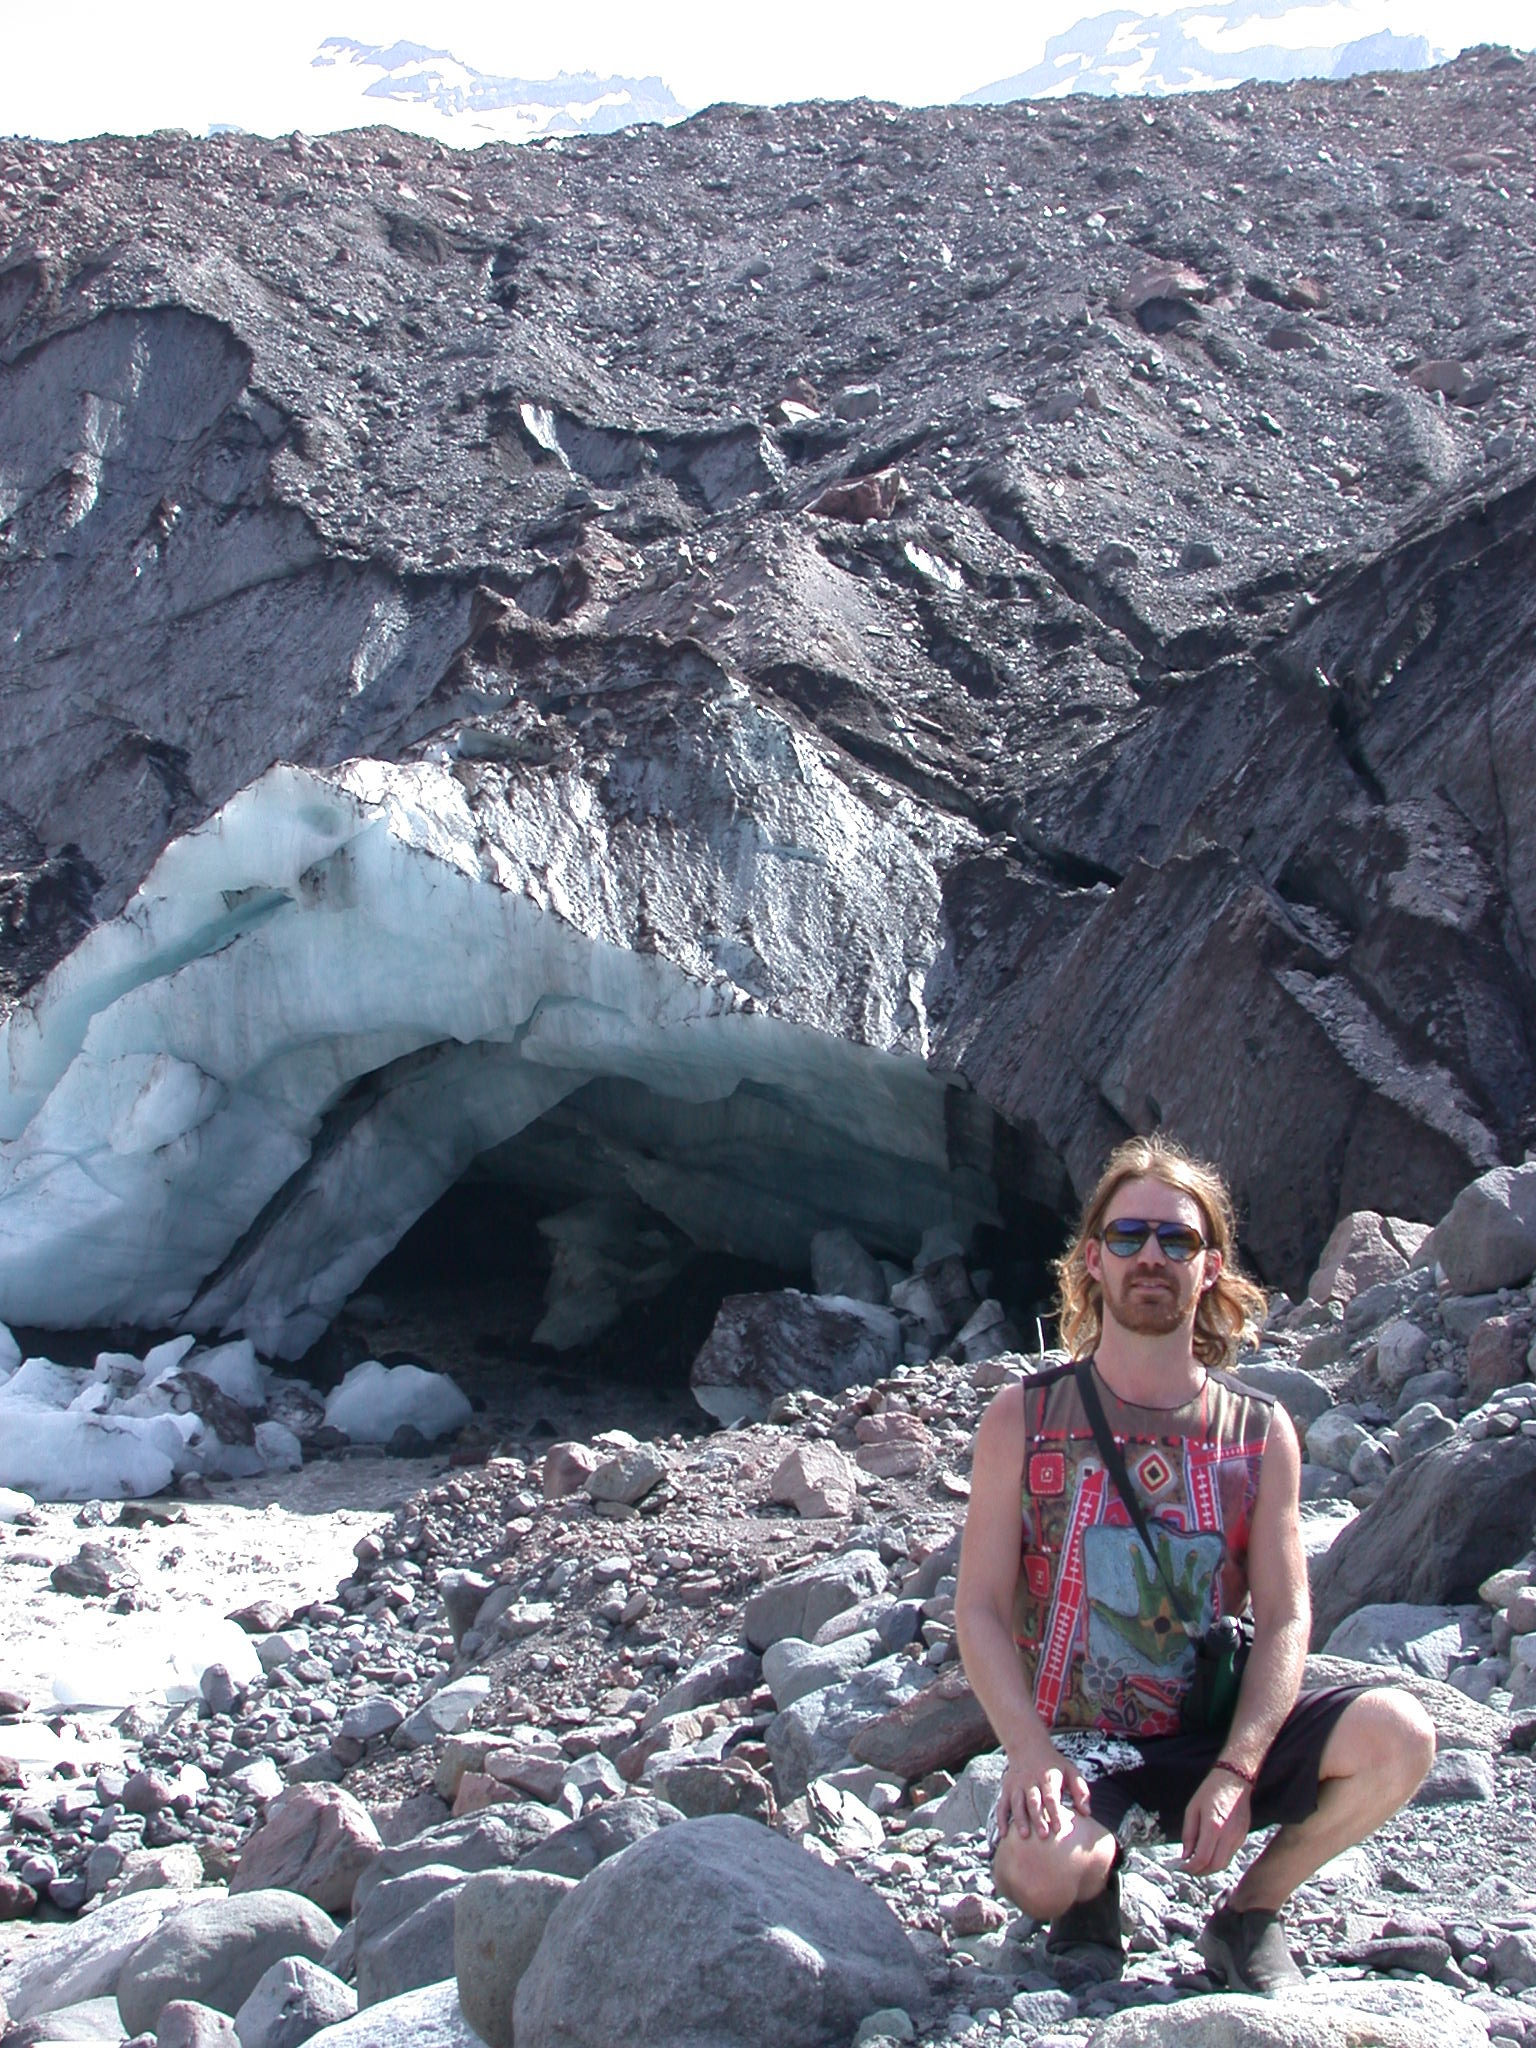 Stardust and Alabaster Ice Cave at Base of Glacier on Mount Rainier